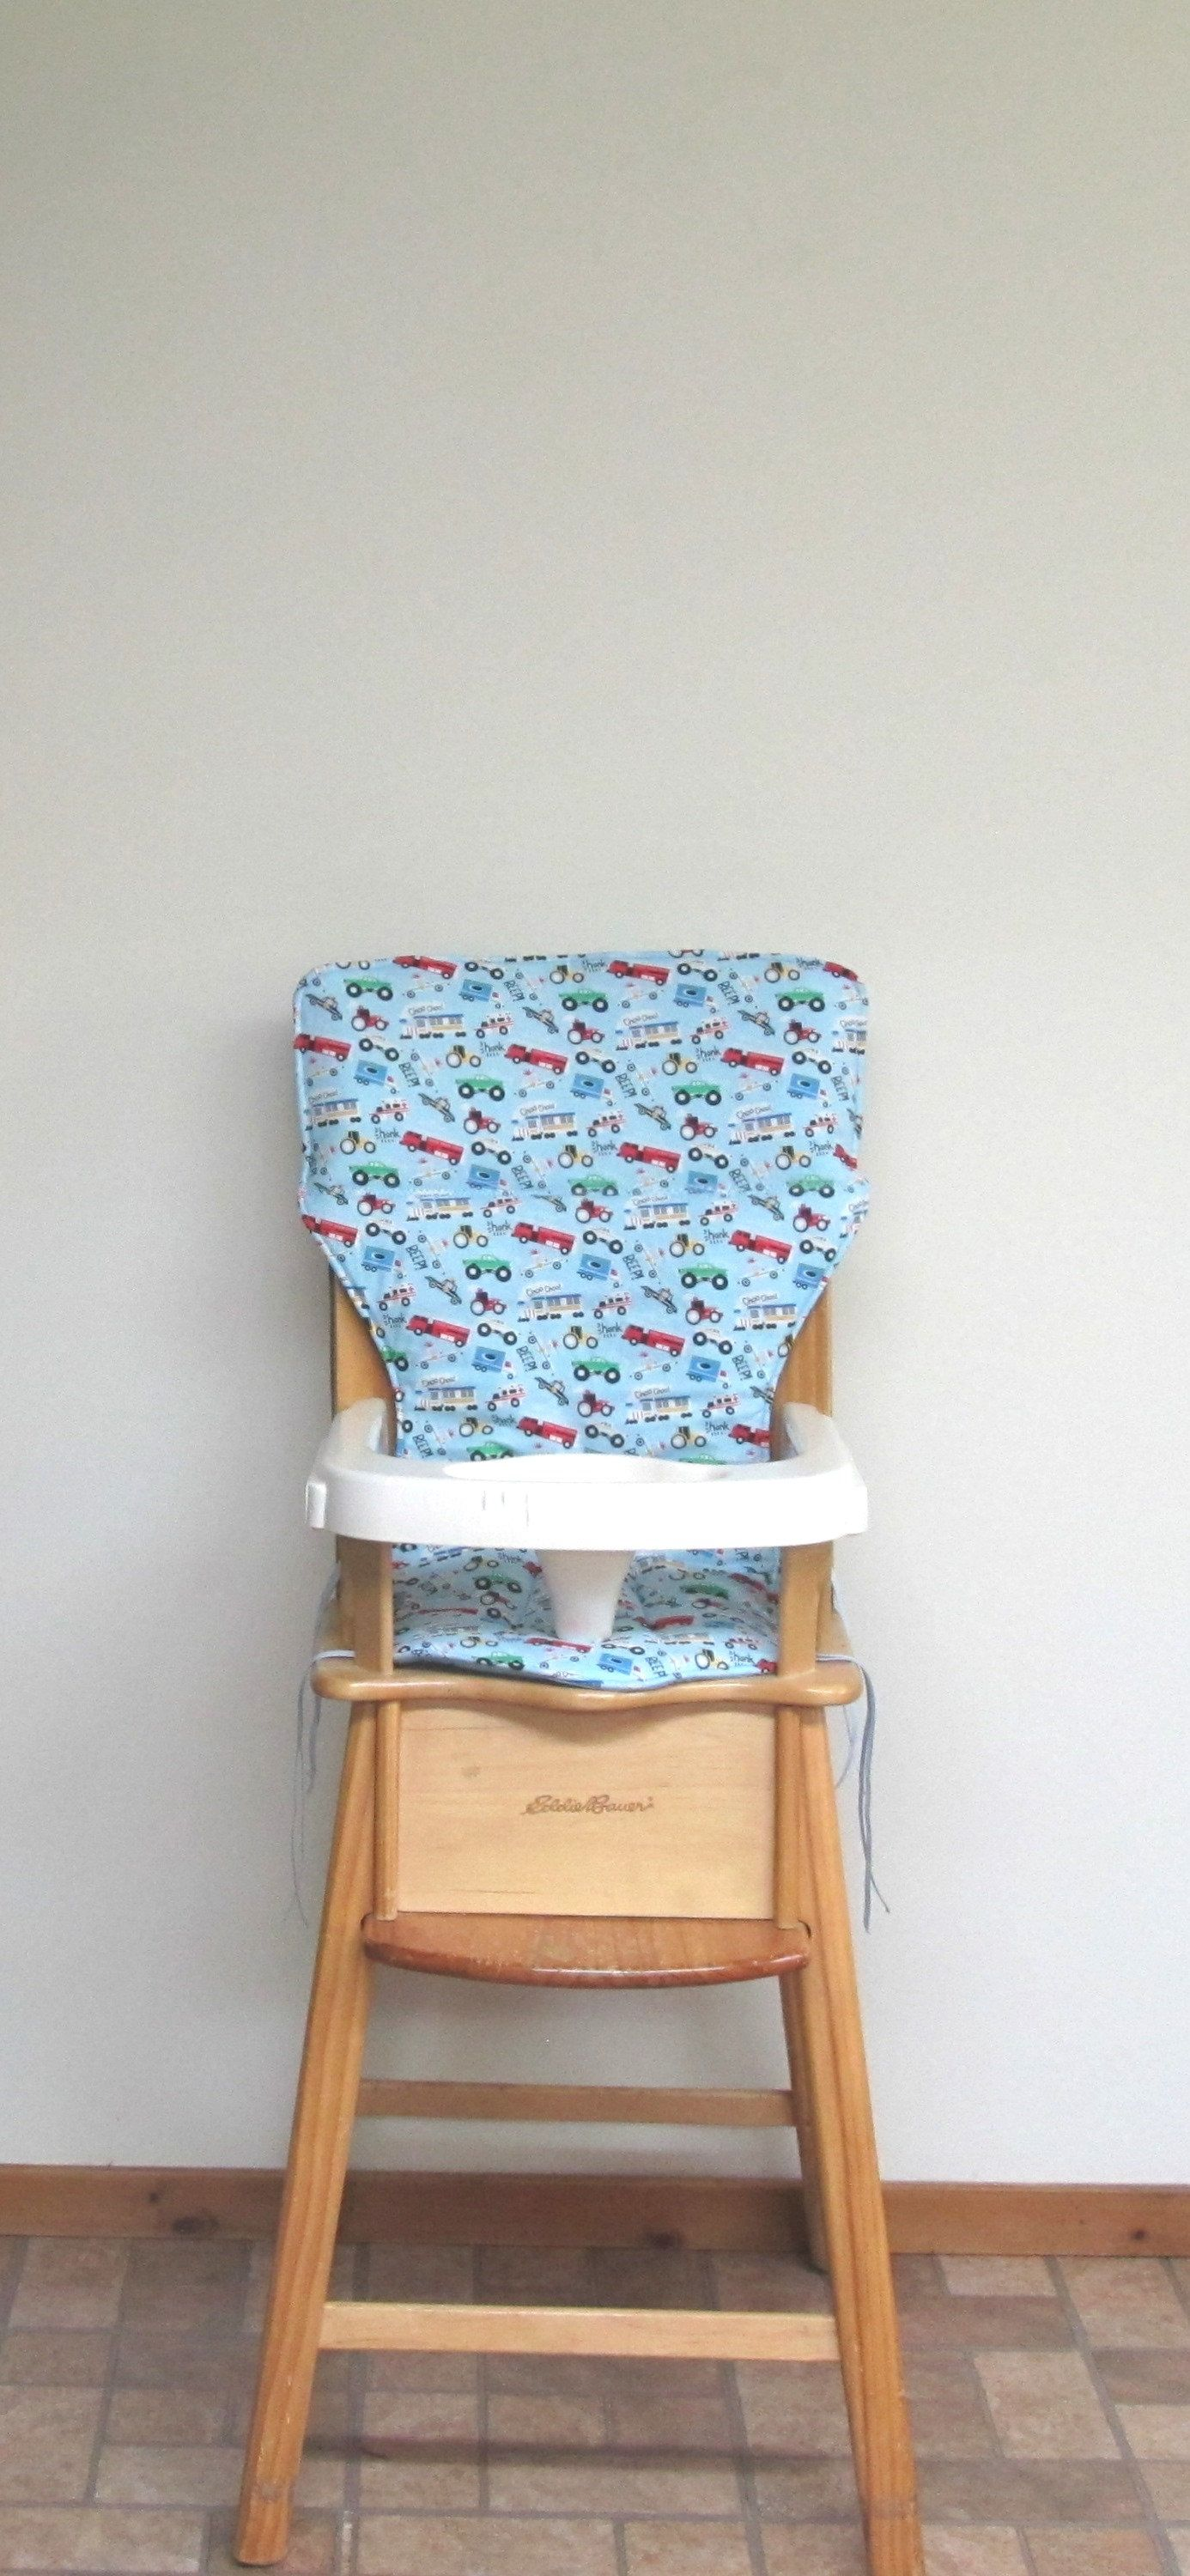 Eddie Bauer replacement childrens high chair cover